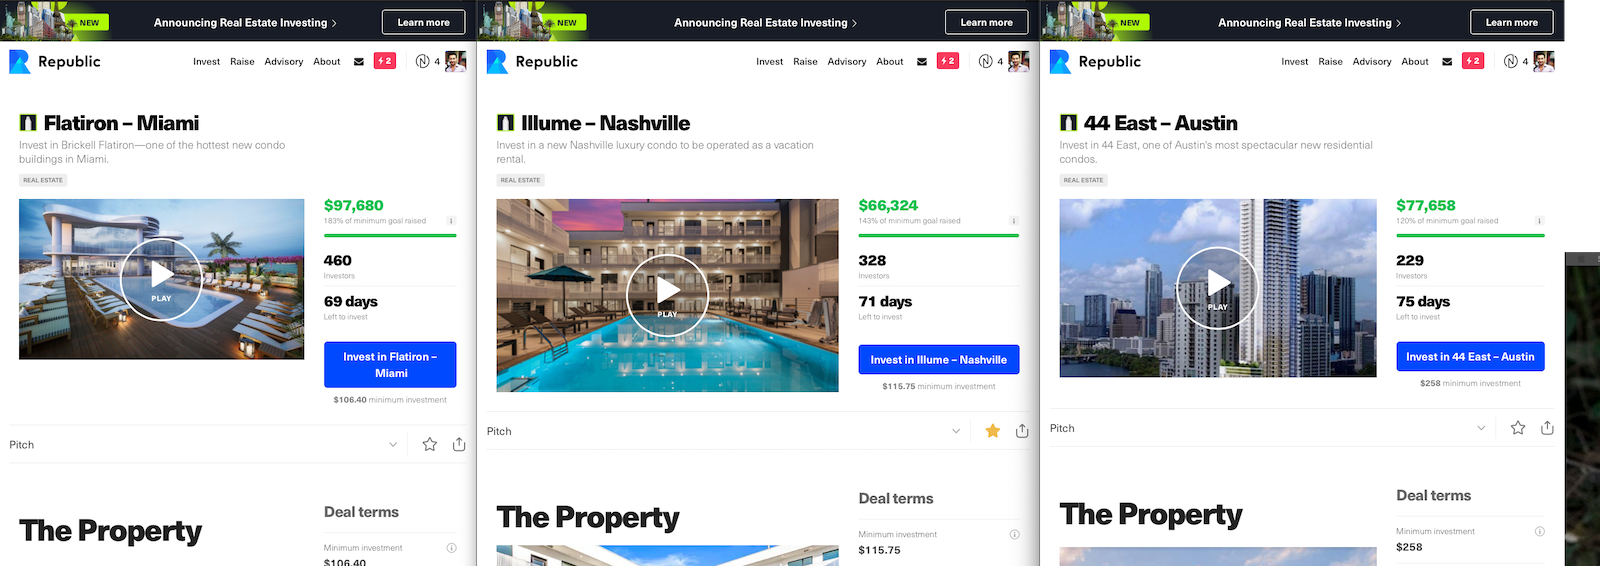 Image of Republic Real Estate home screen